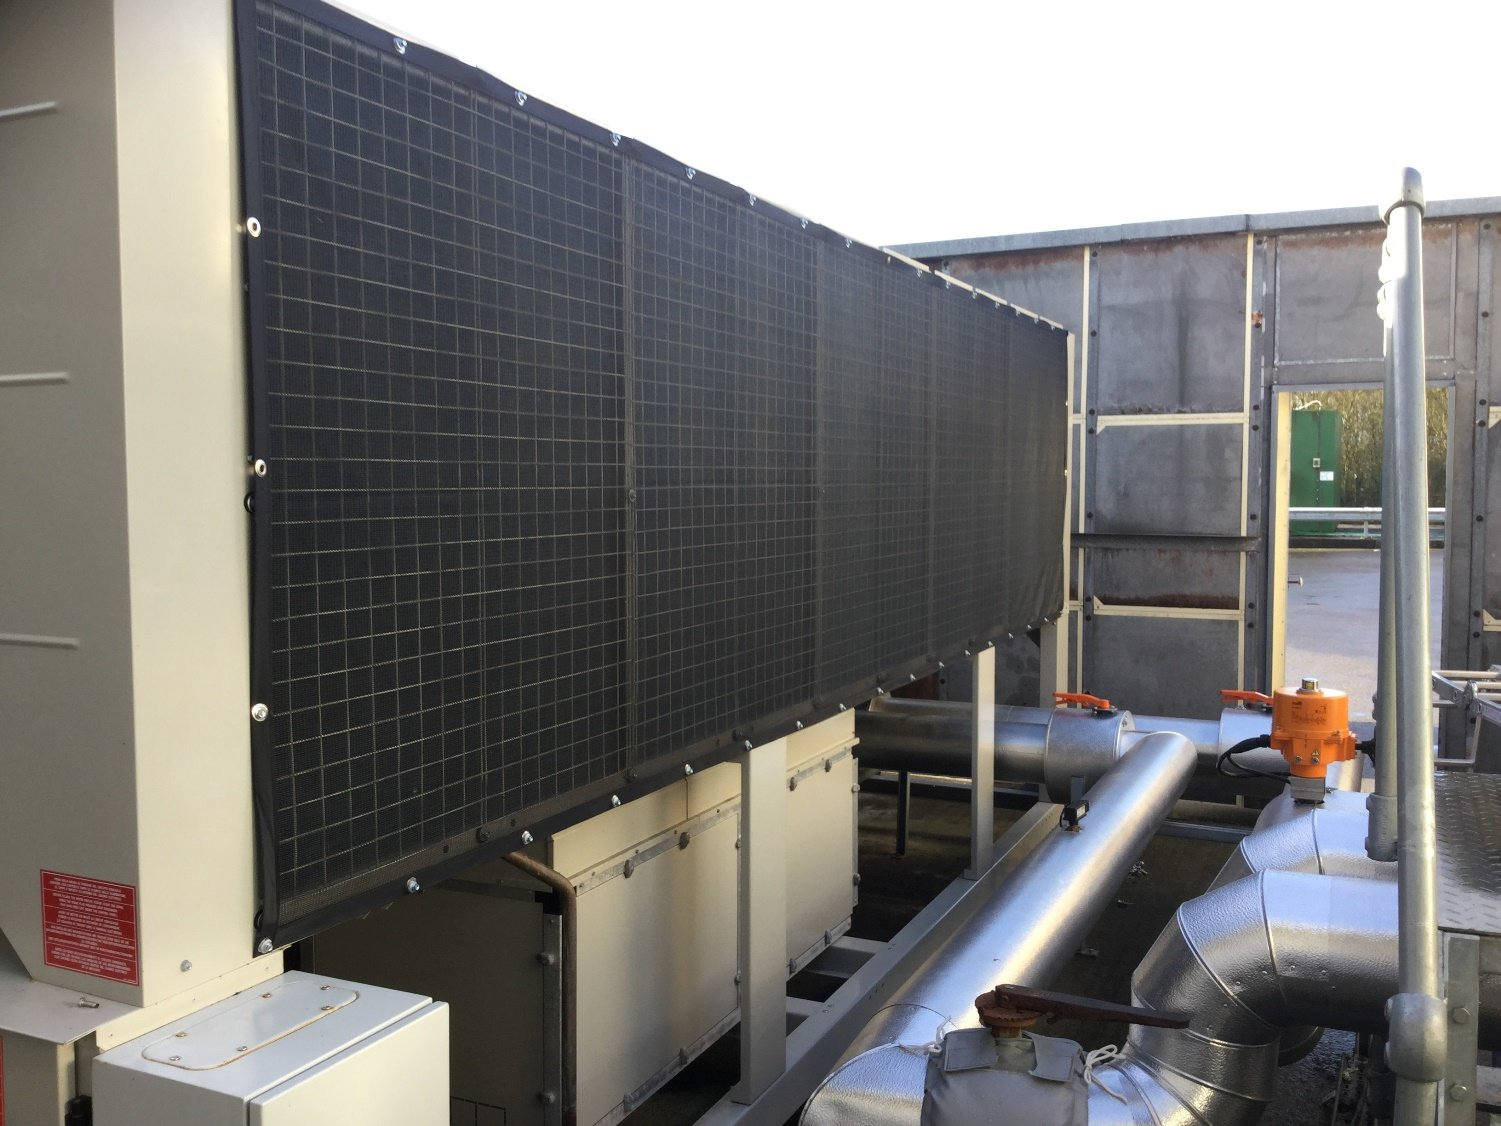 RABScreen air intake screens